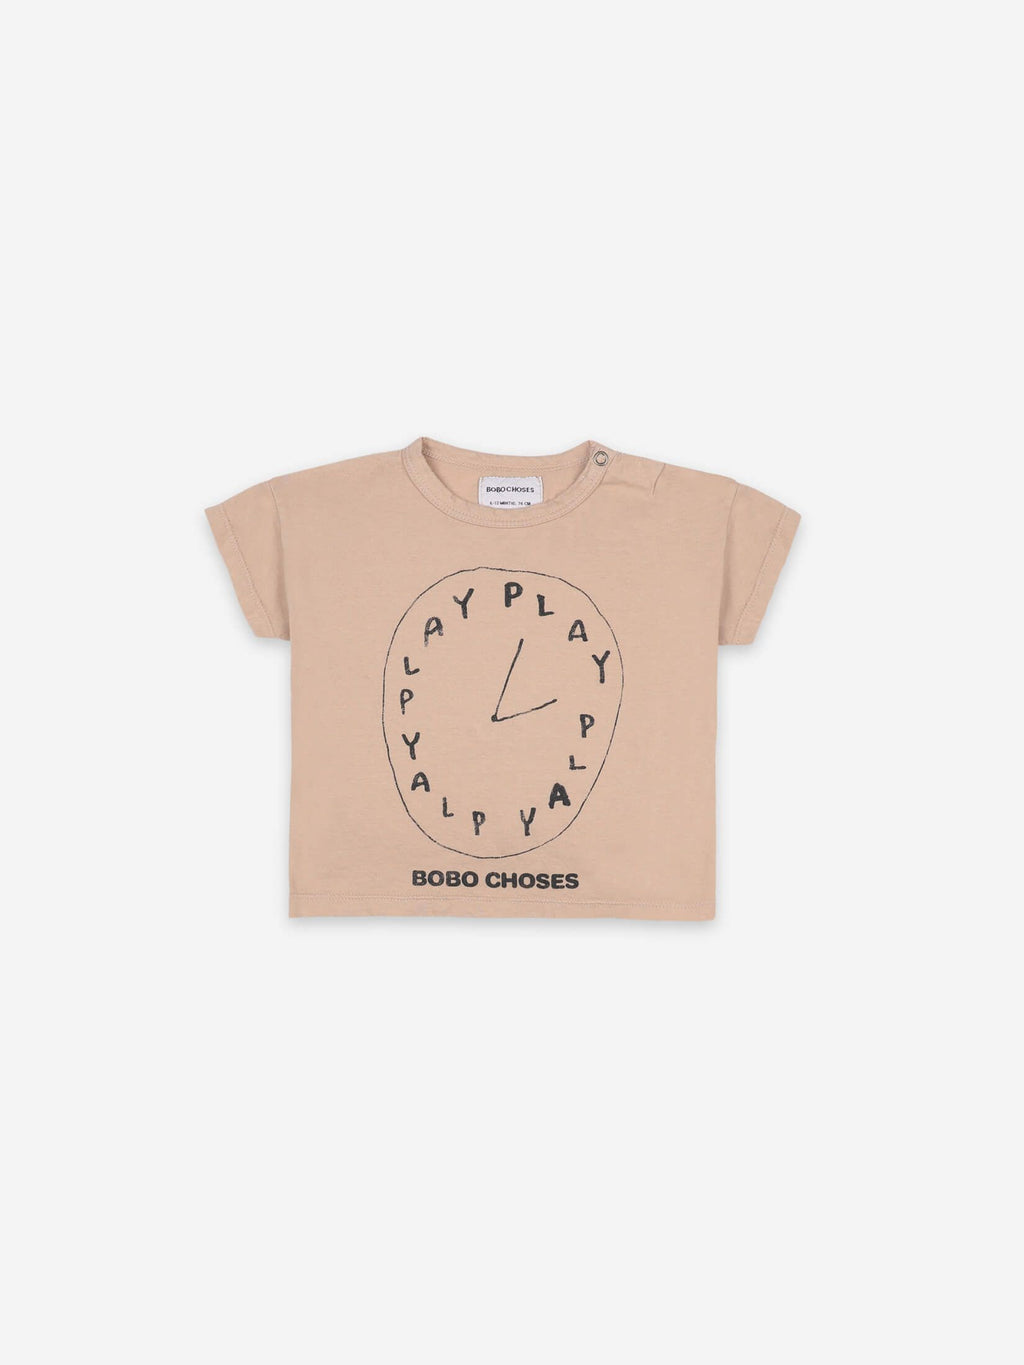 Camiseta bebé play time Bobo choses